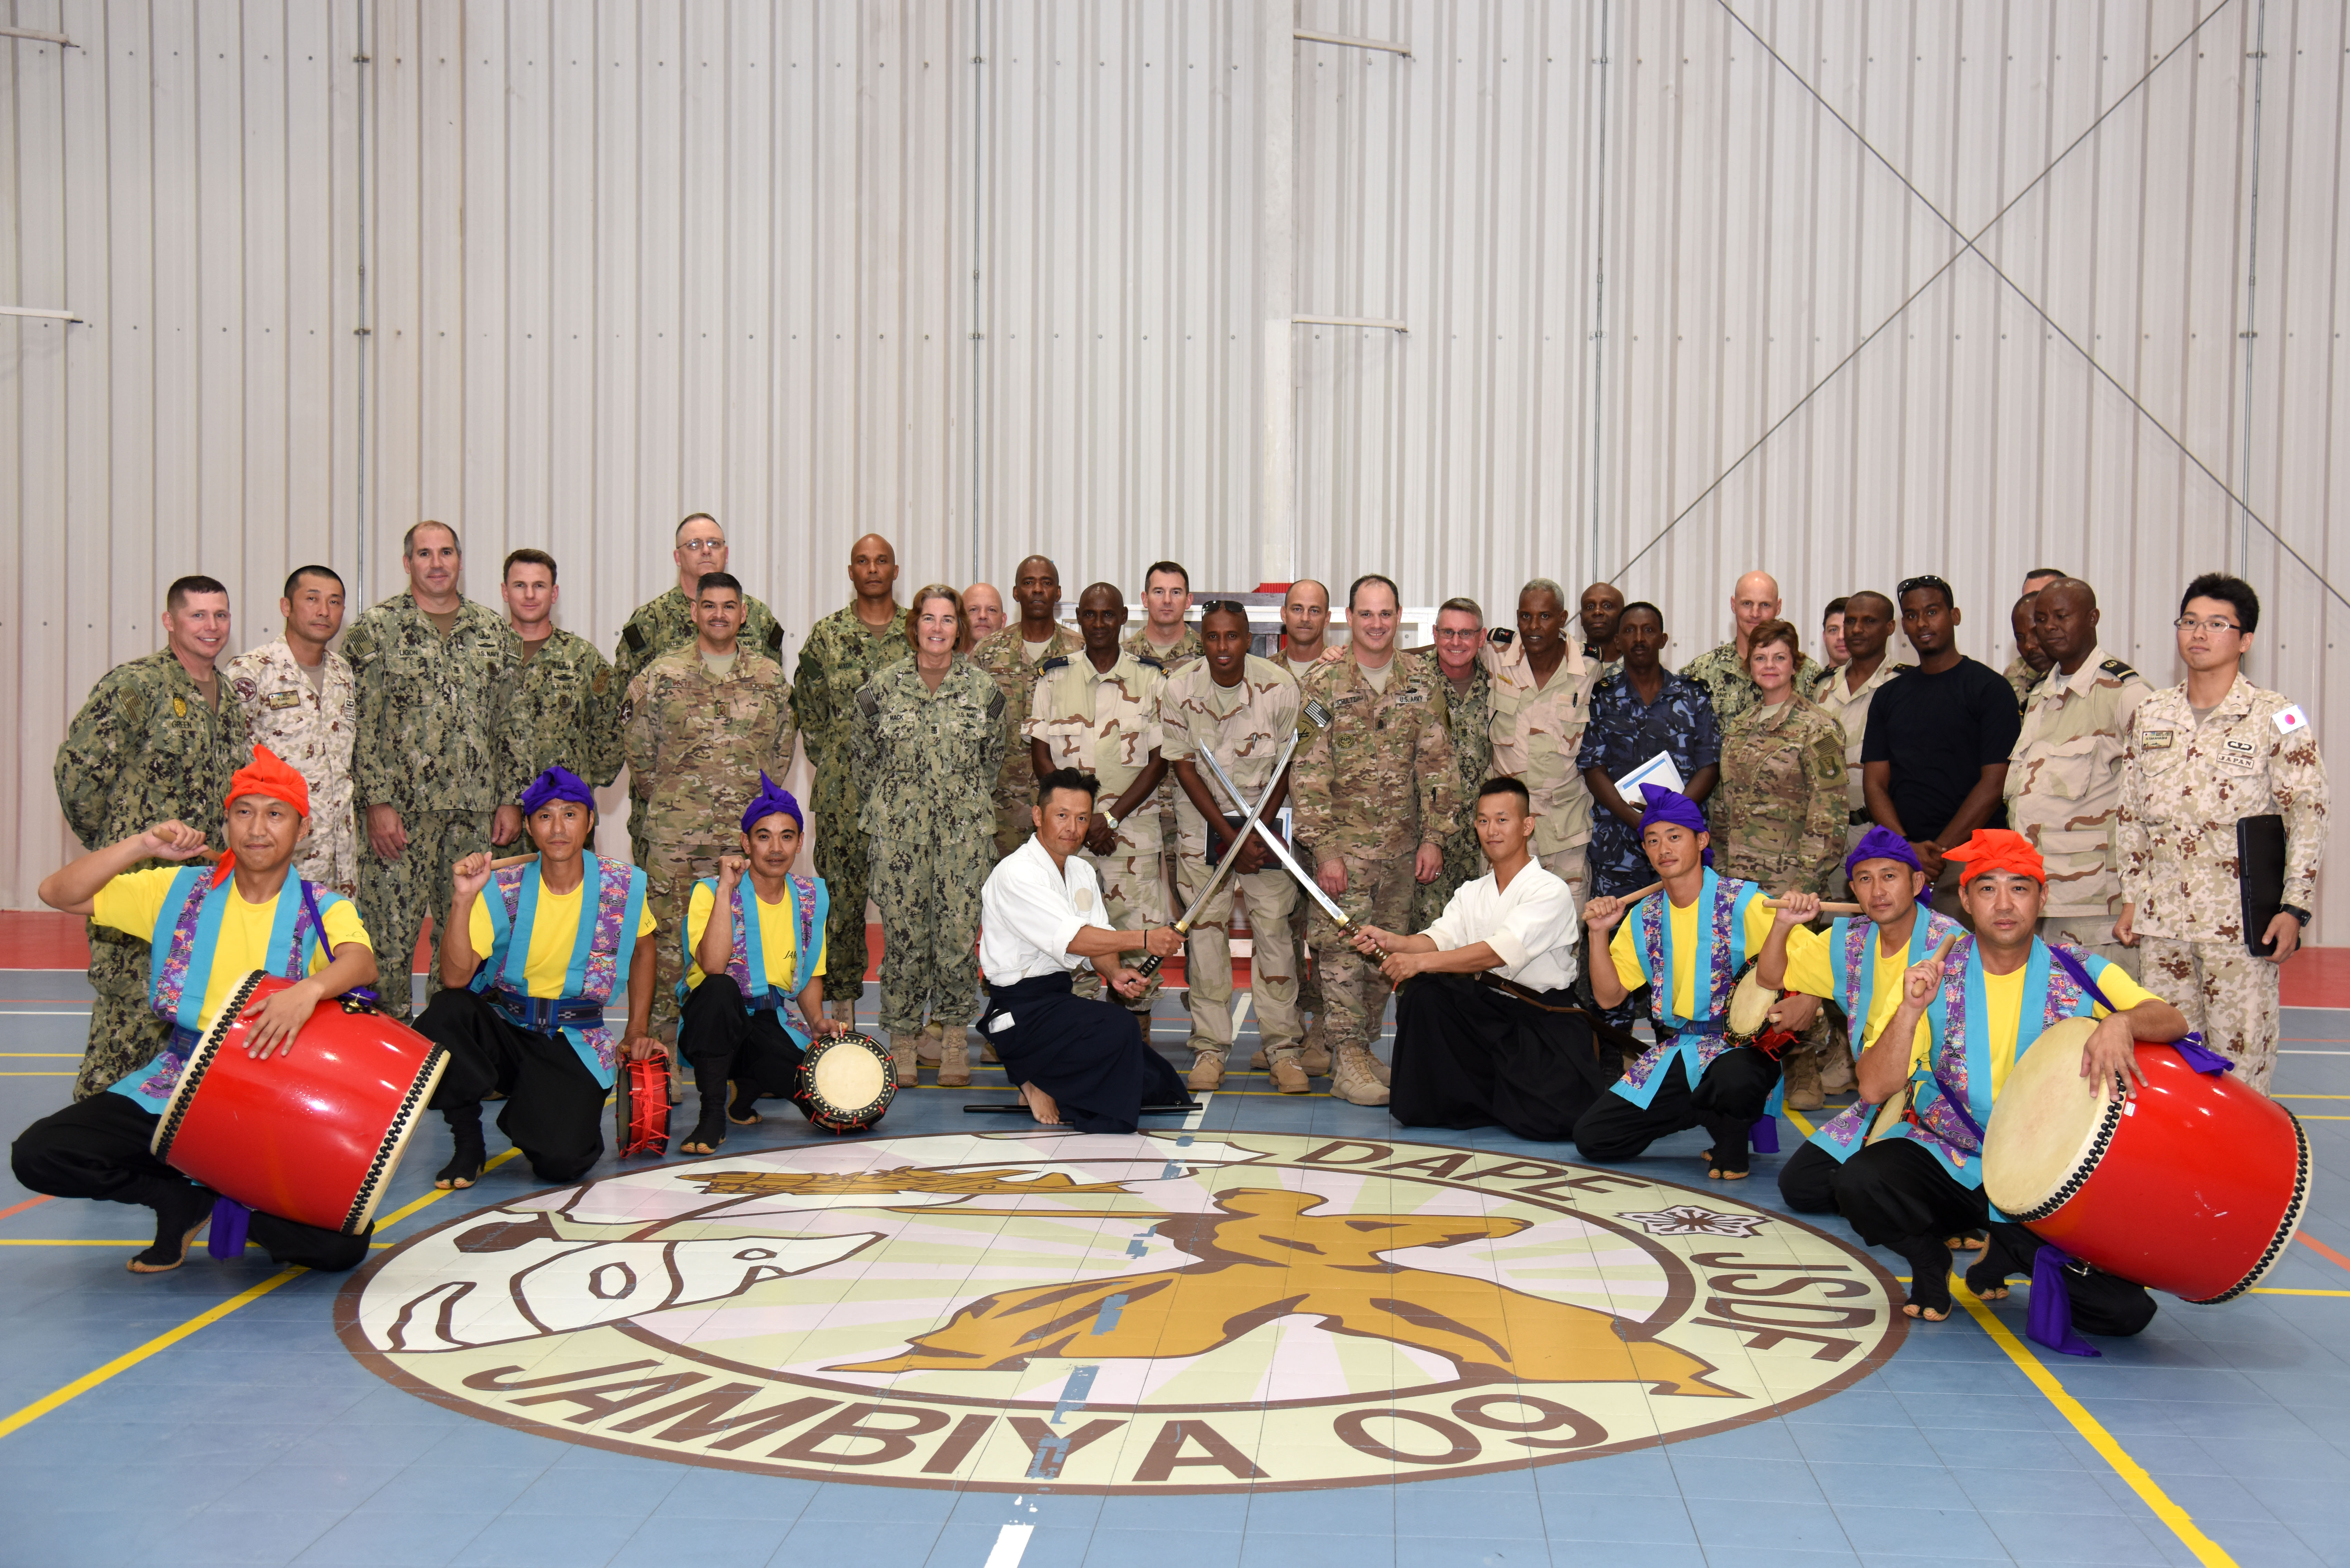 Senior enlisted members pose with swordsmen and Okinawan Eisa dancers after demonstrations that were part of the Joint Forces Senior Enlisted Professional Development Course at the Japanese base in Djibouti, Nov. 24, 2015. The second rendition of the course enabled Japan Self-Defense Force members to share their mission, culture and traditions with their U.S. and Djiboutian counterparts. (U.S. Air Force photo by Staff Sgt. Victoria Sneed)